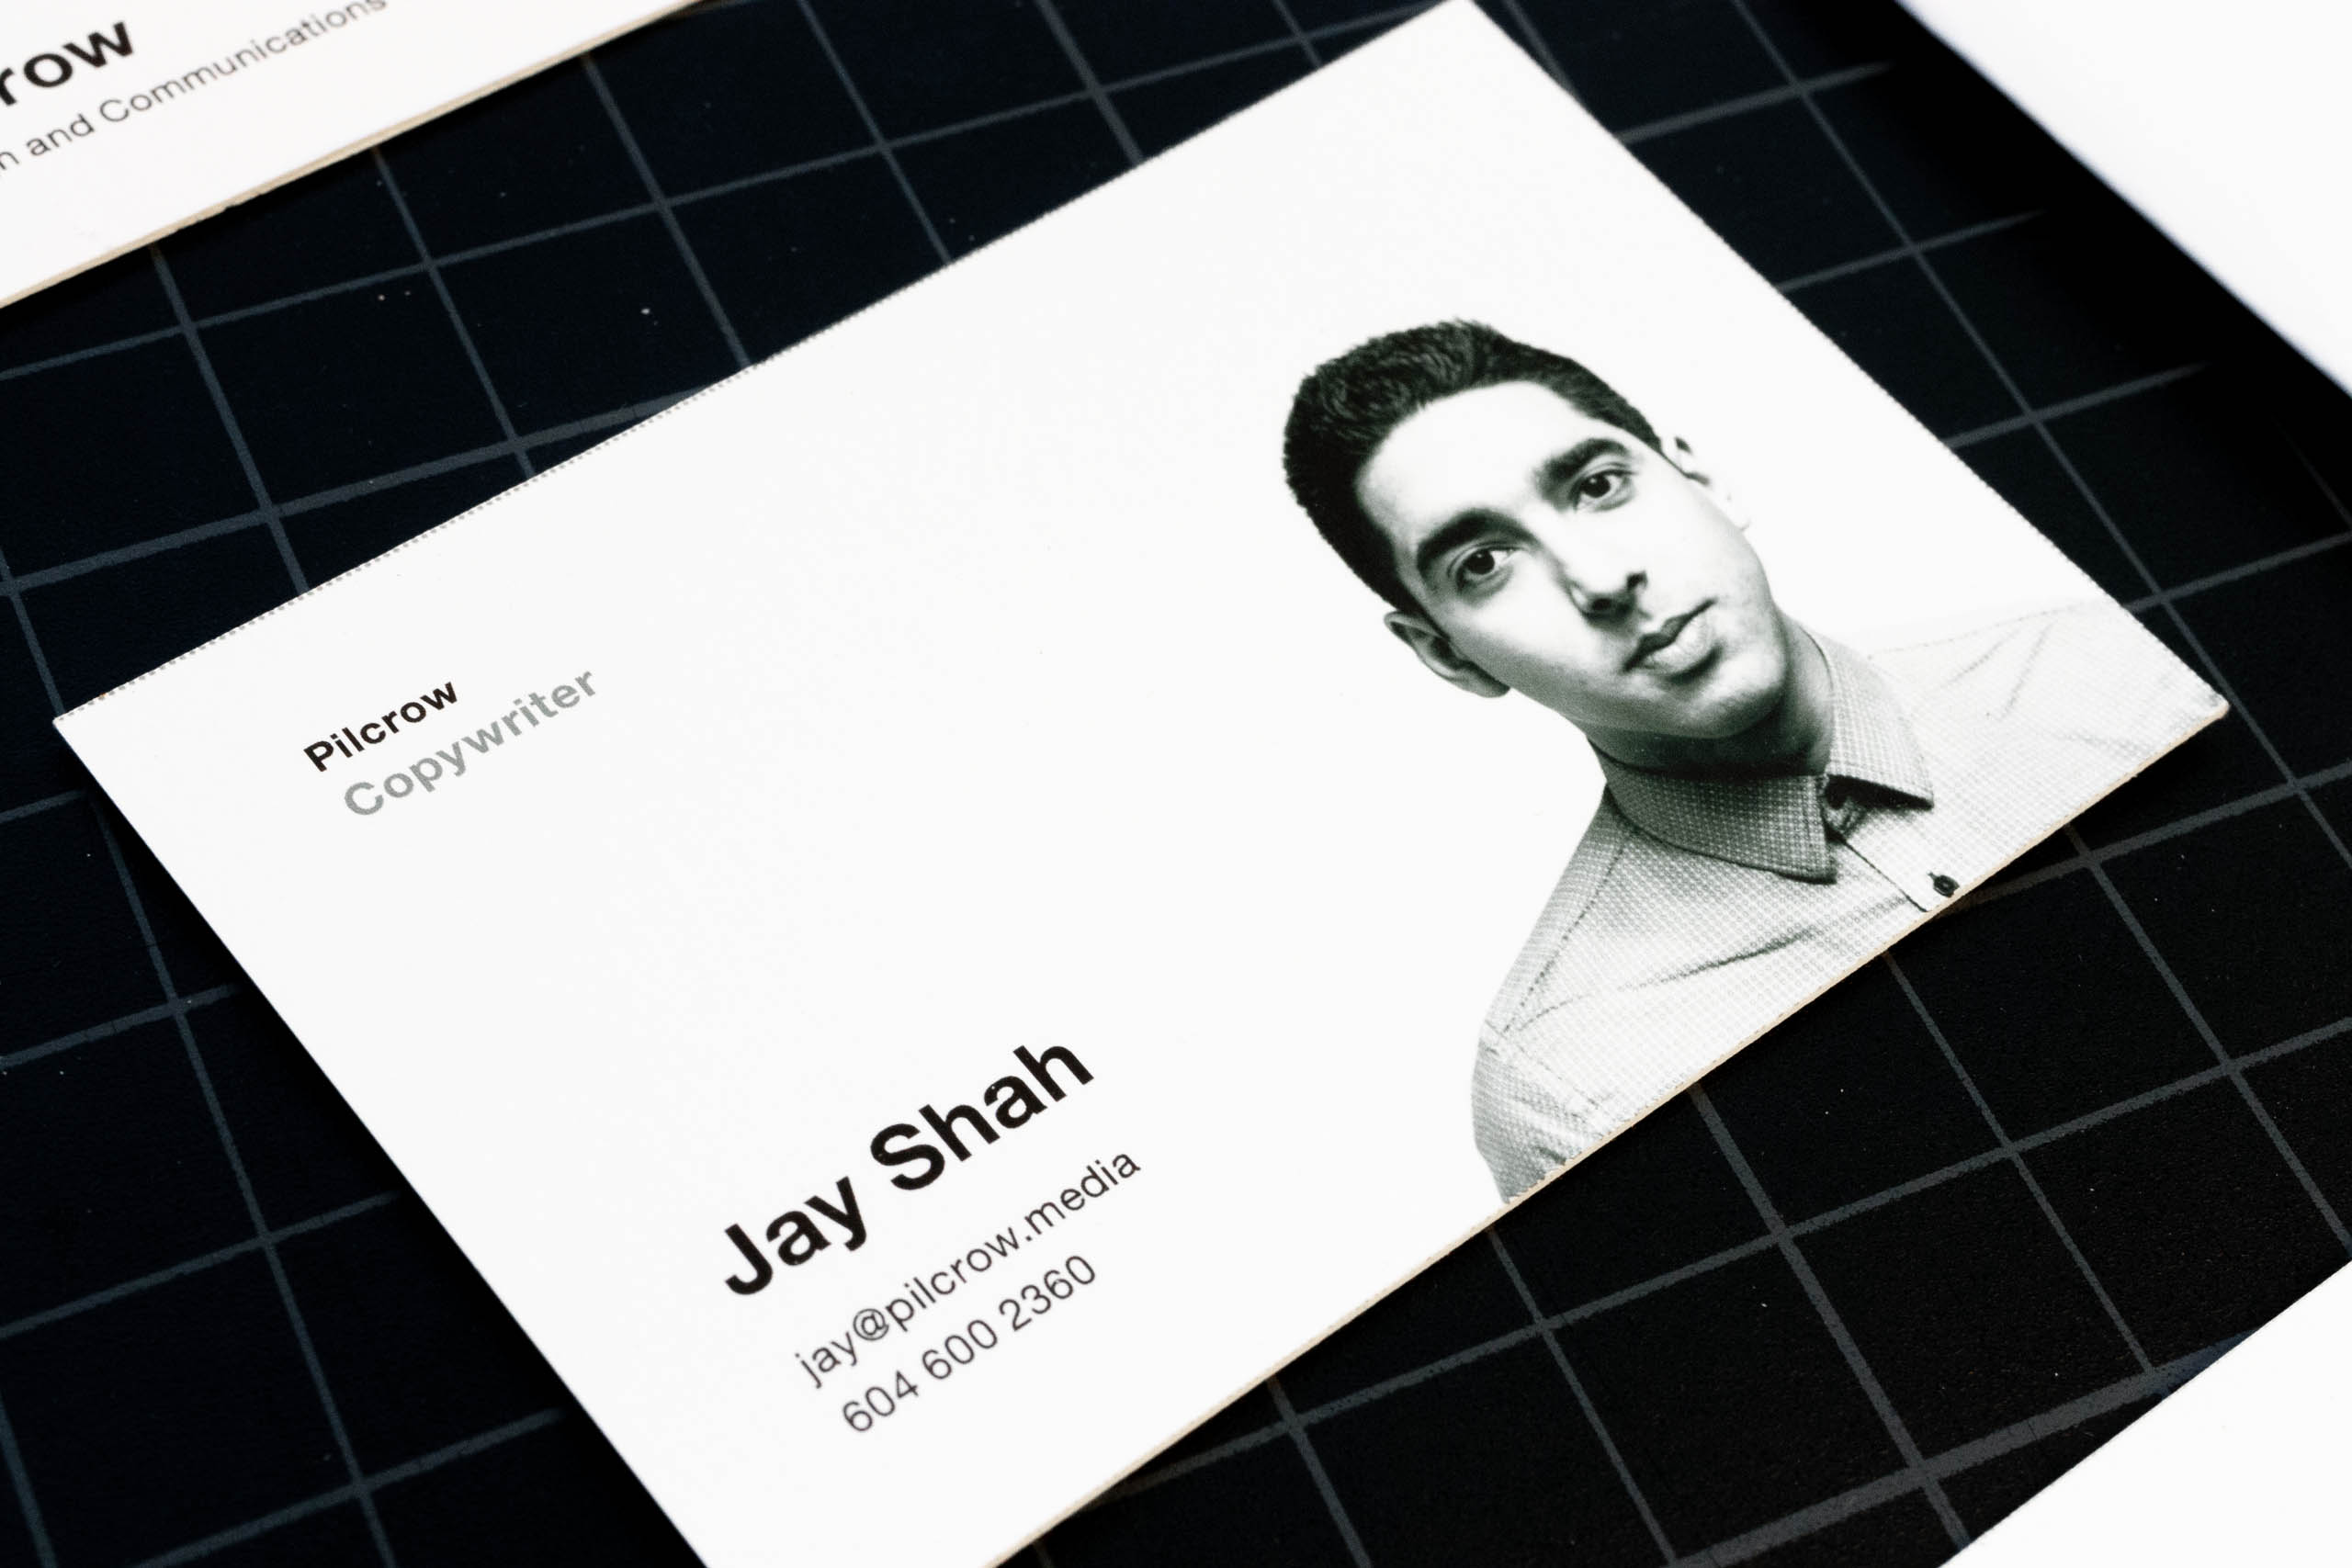 Close up of the content side of Pilcrow Media copywriter business card featuring black and white portrait photography — by Yagnyuk.